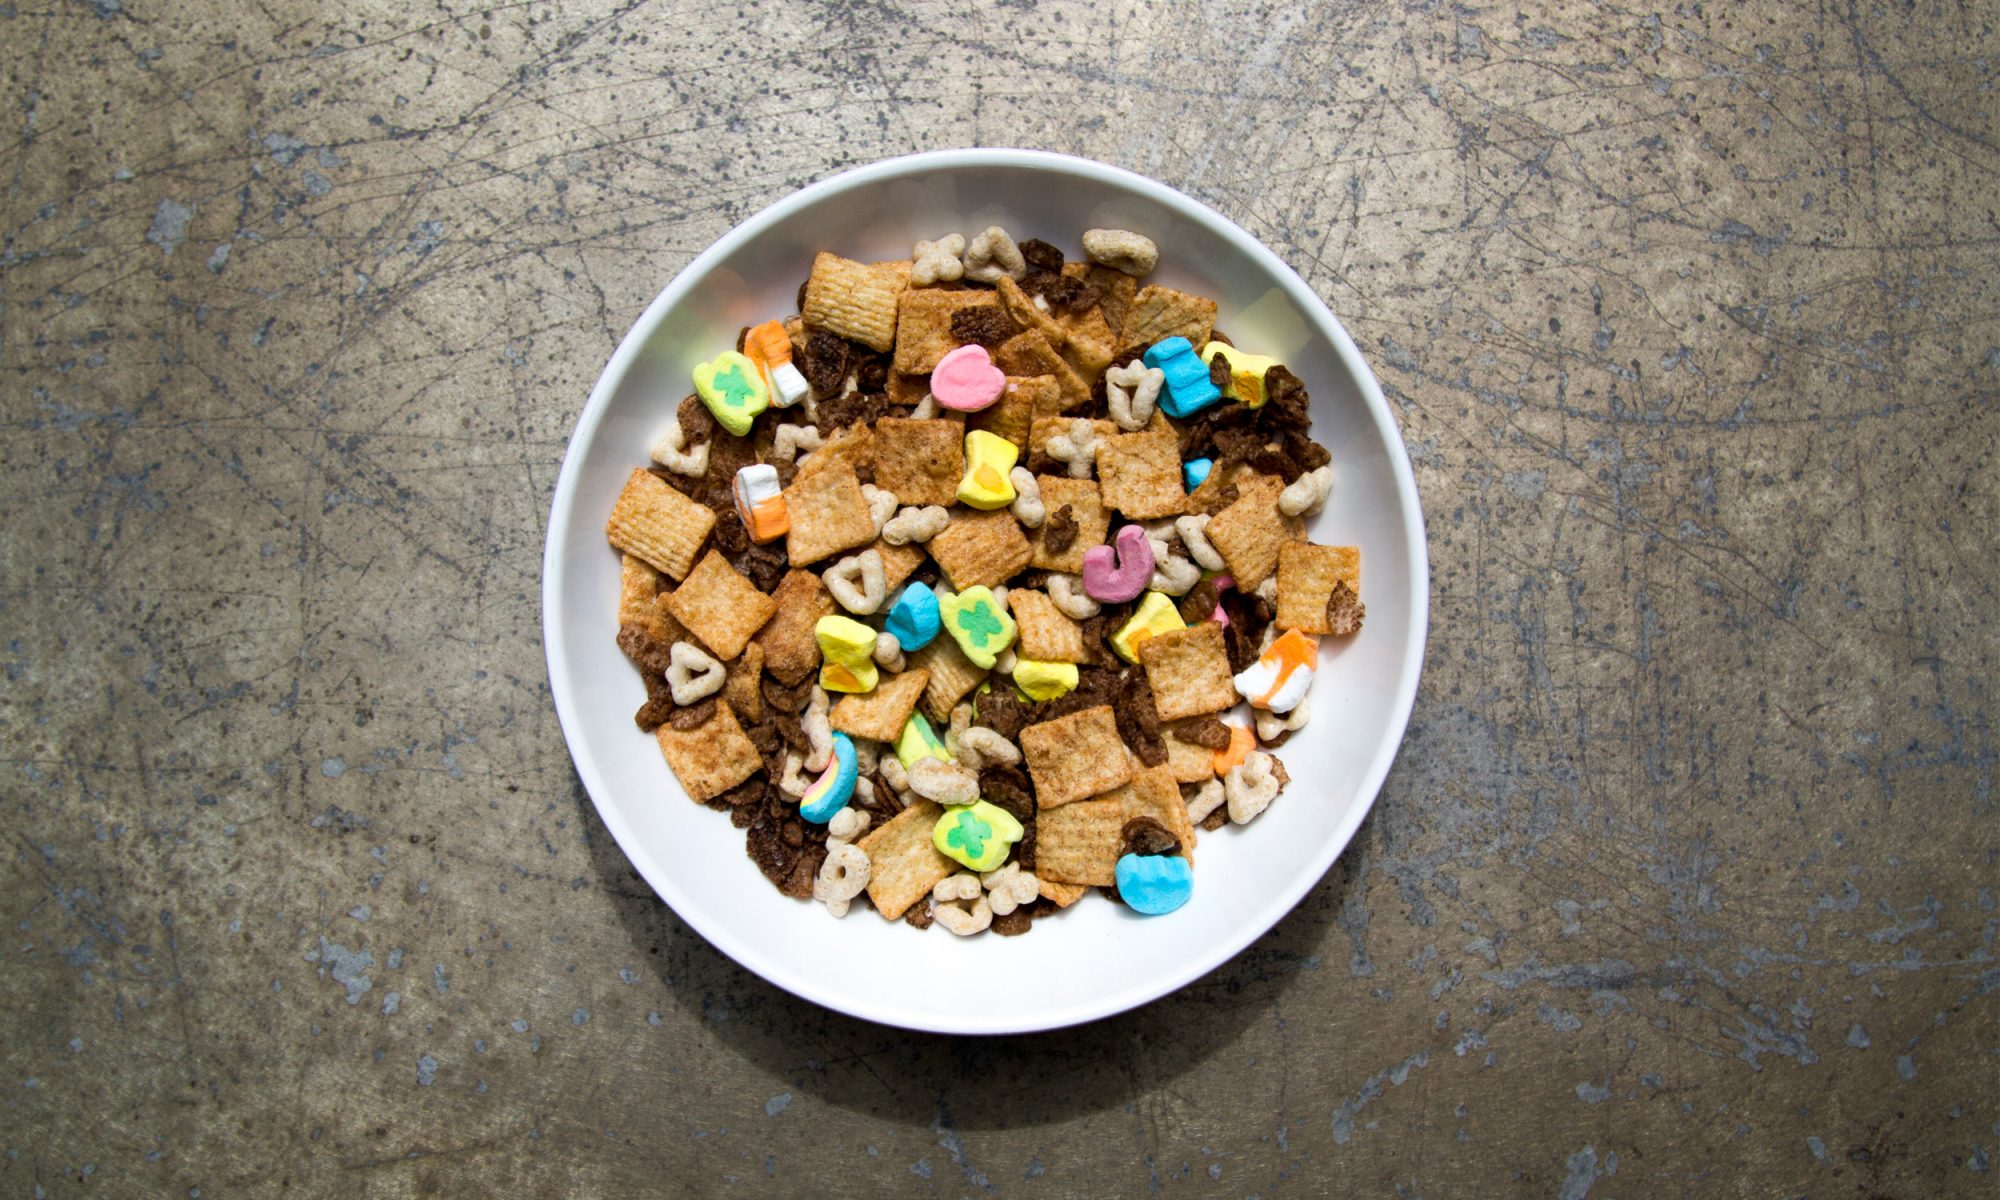 EC:  assets%2Fmessage-editor%2F1463519982645-frankenstein-cereal-lucky-charms-cocoa-pebbles-cinnamon-toast-crunch-hero